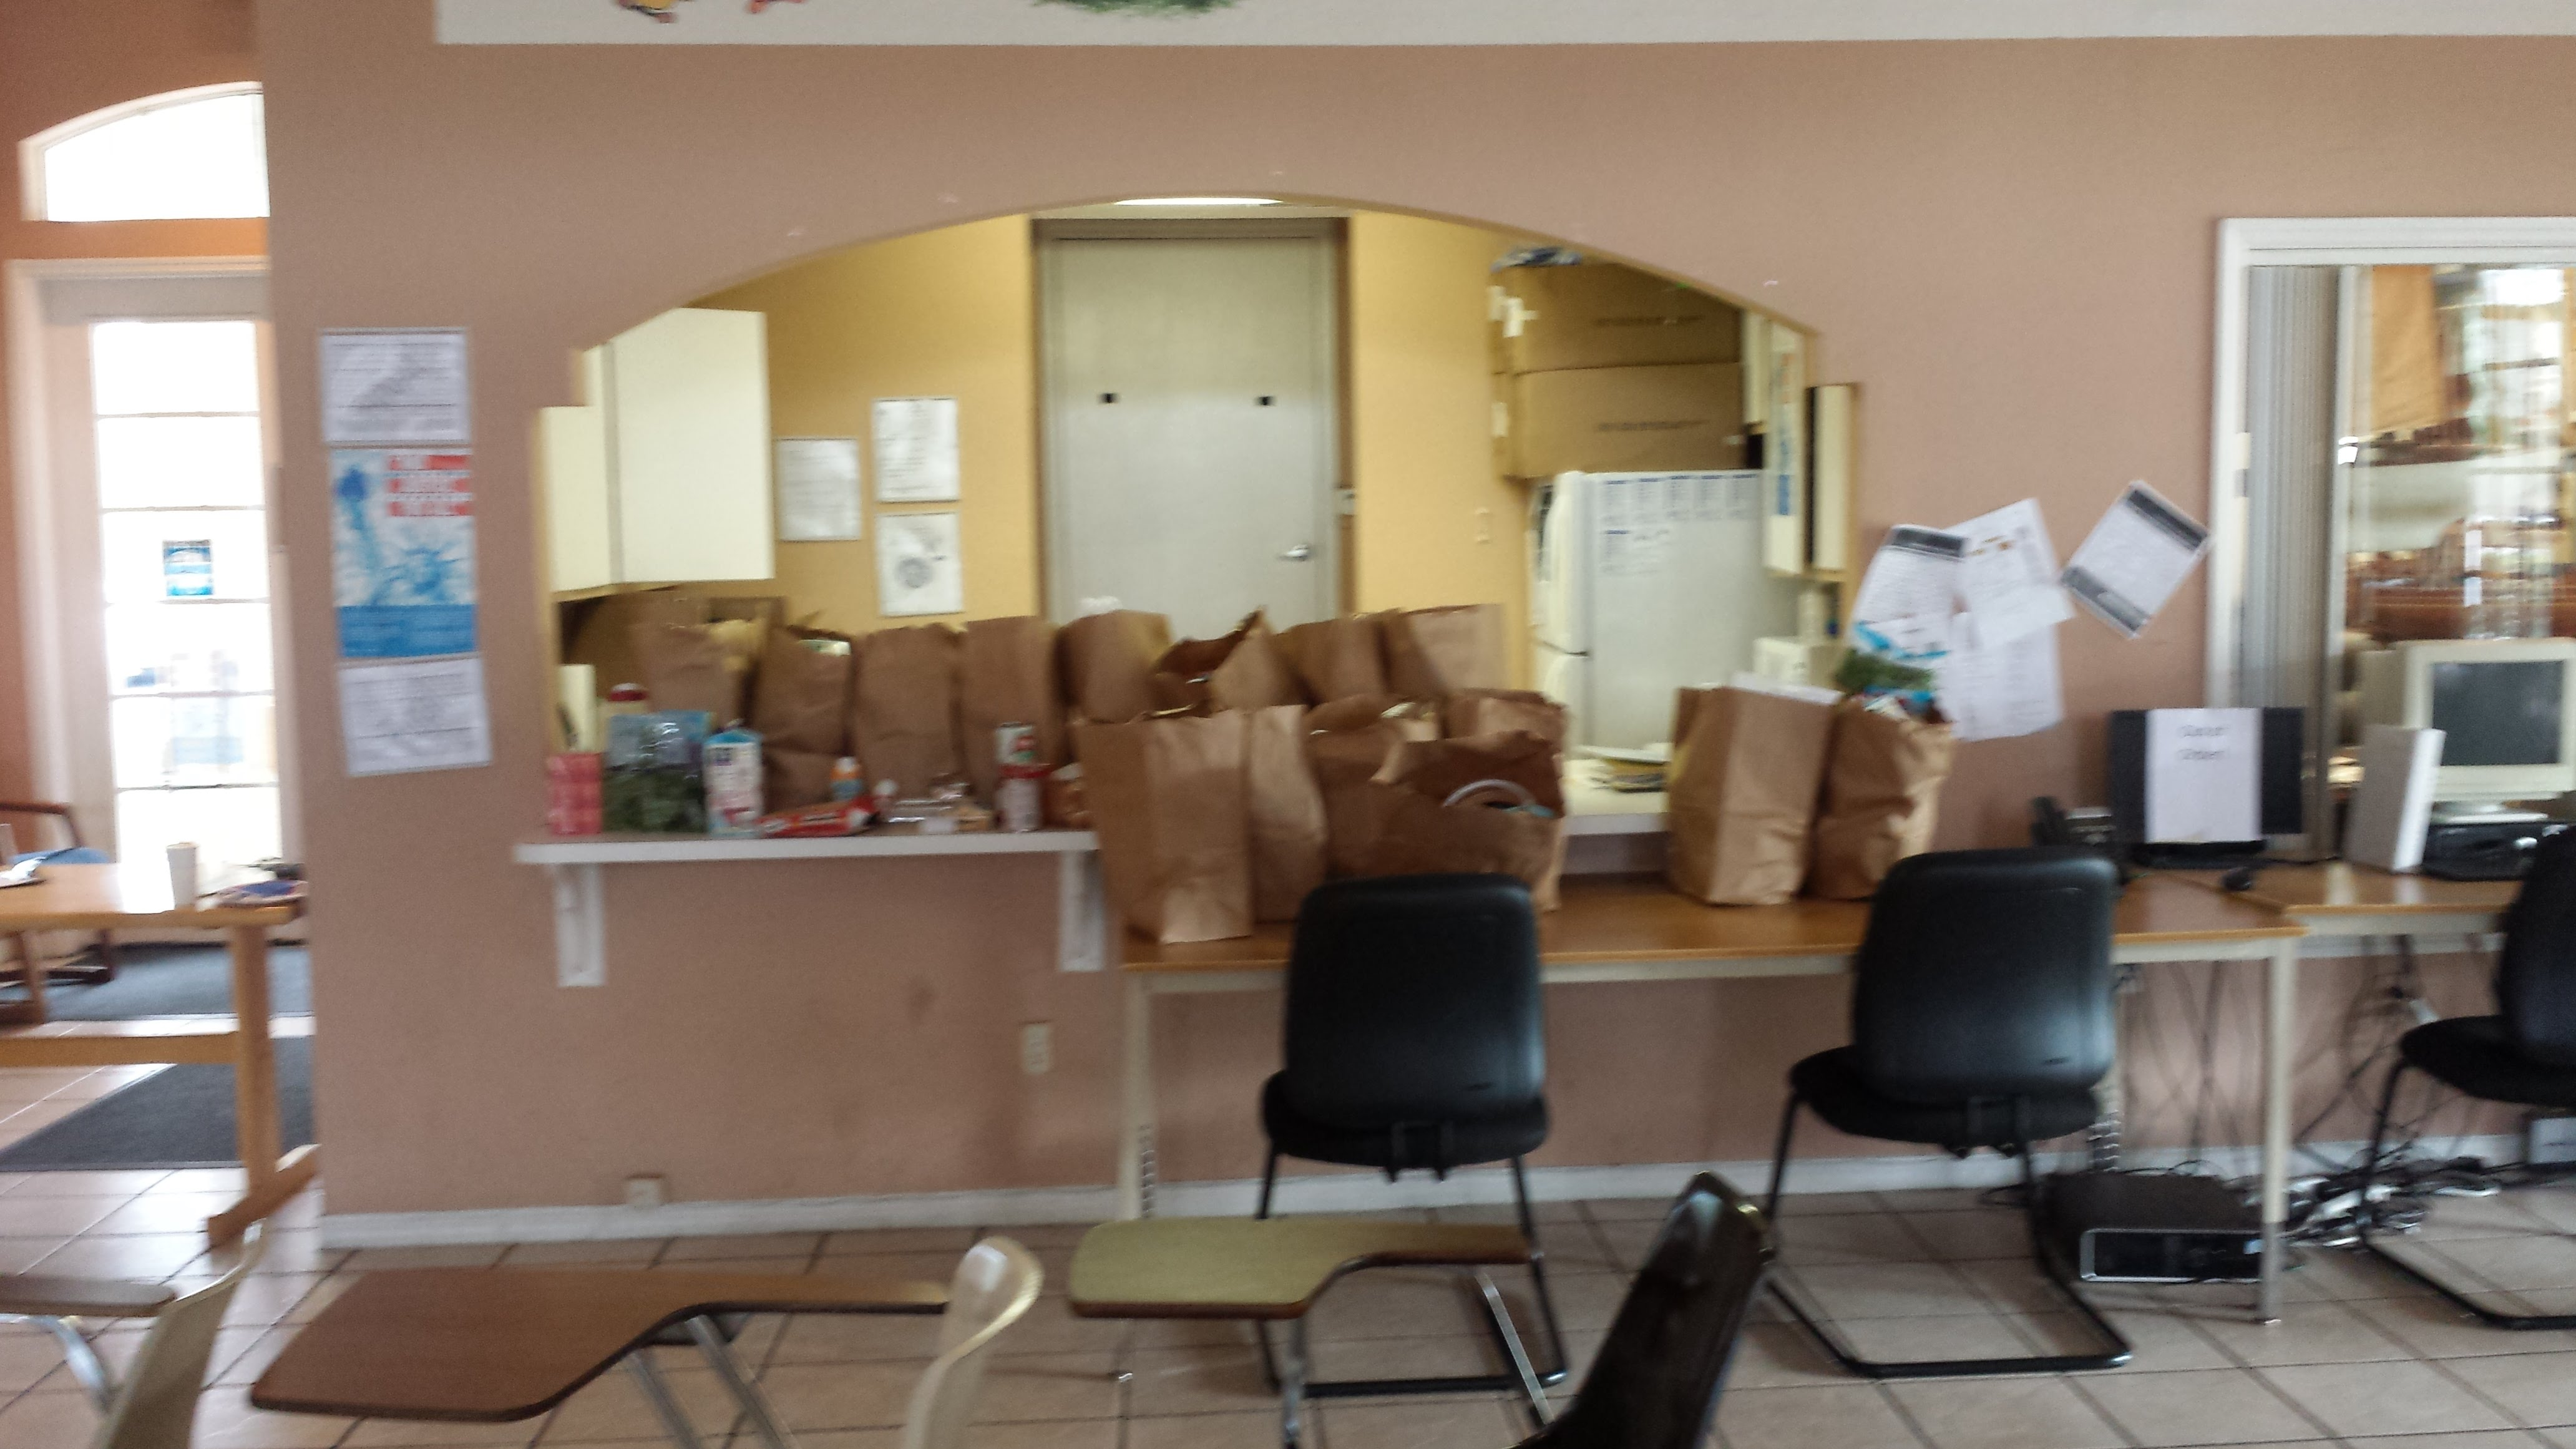 STS FOOD PANTRY located inside Metro Place Apartments 1049 Kirkman